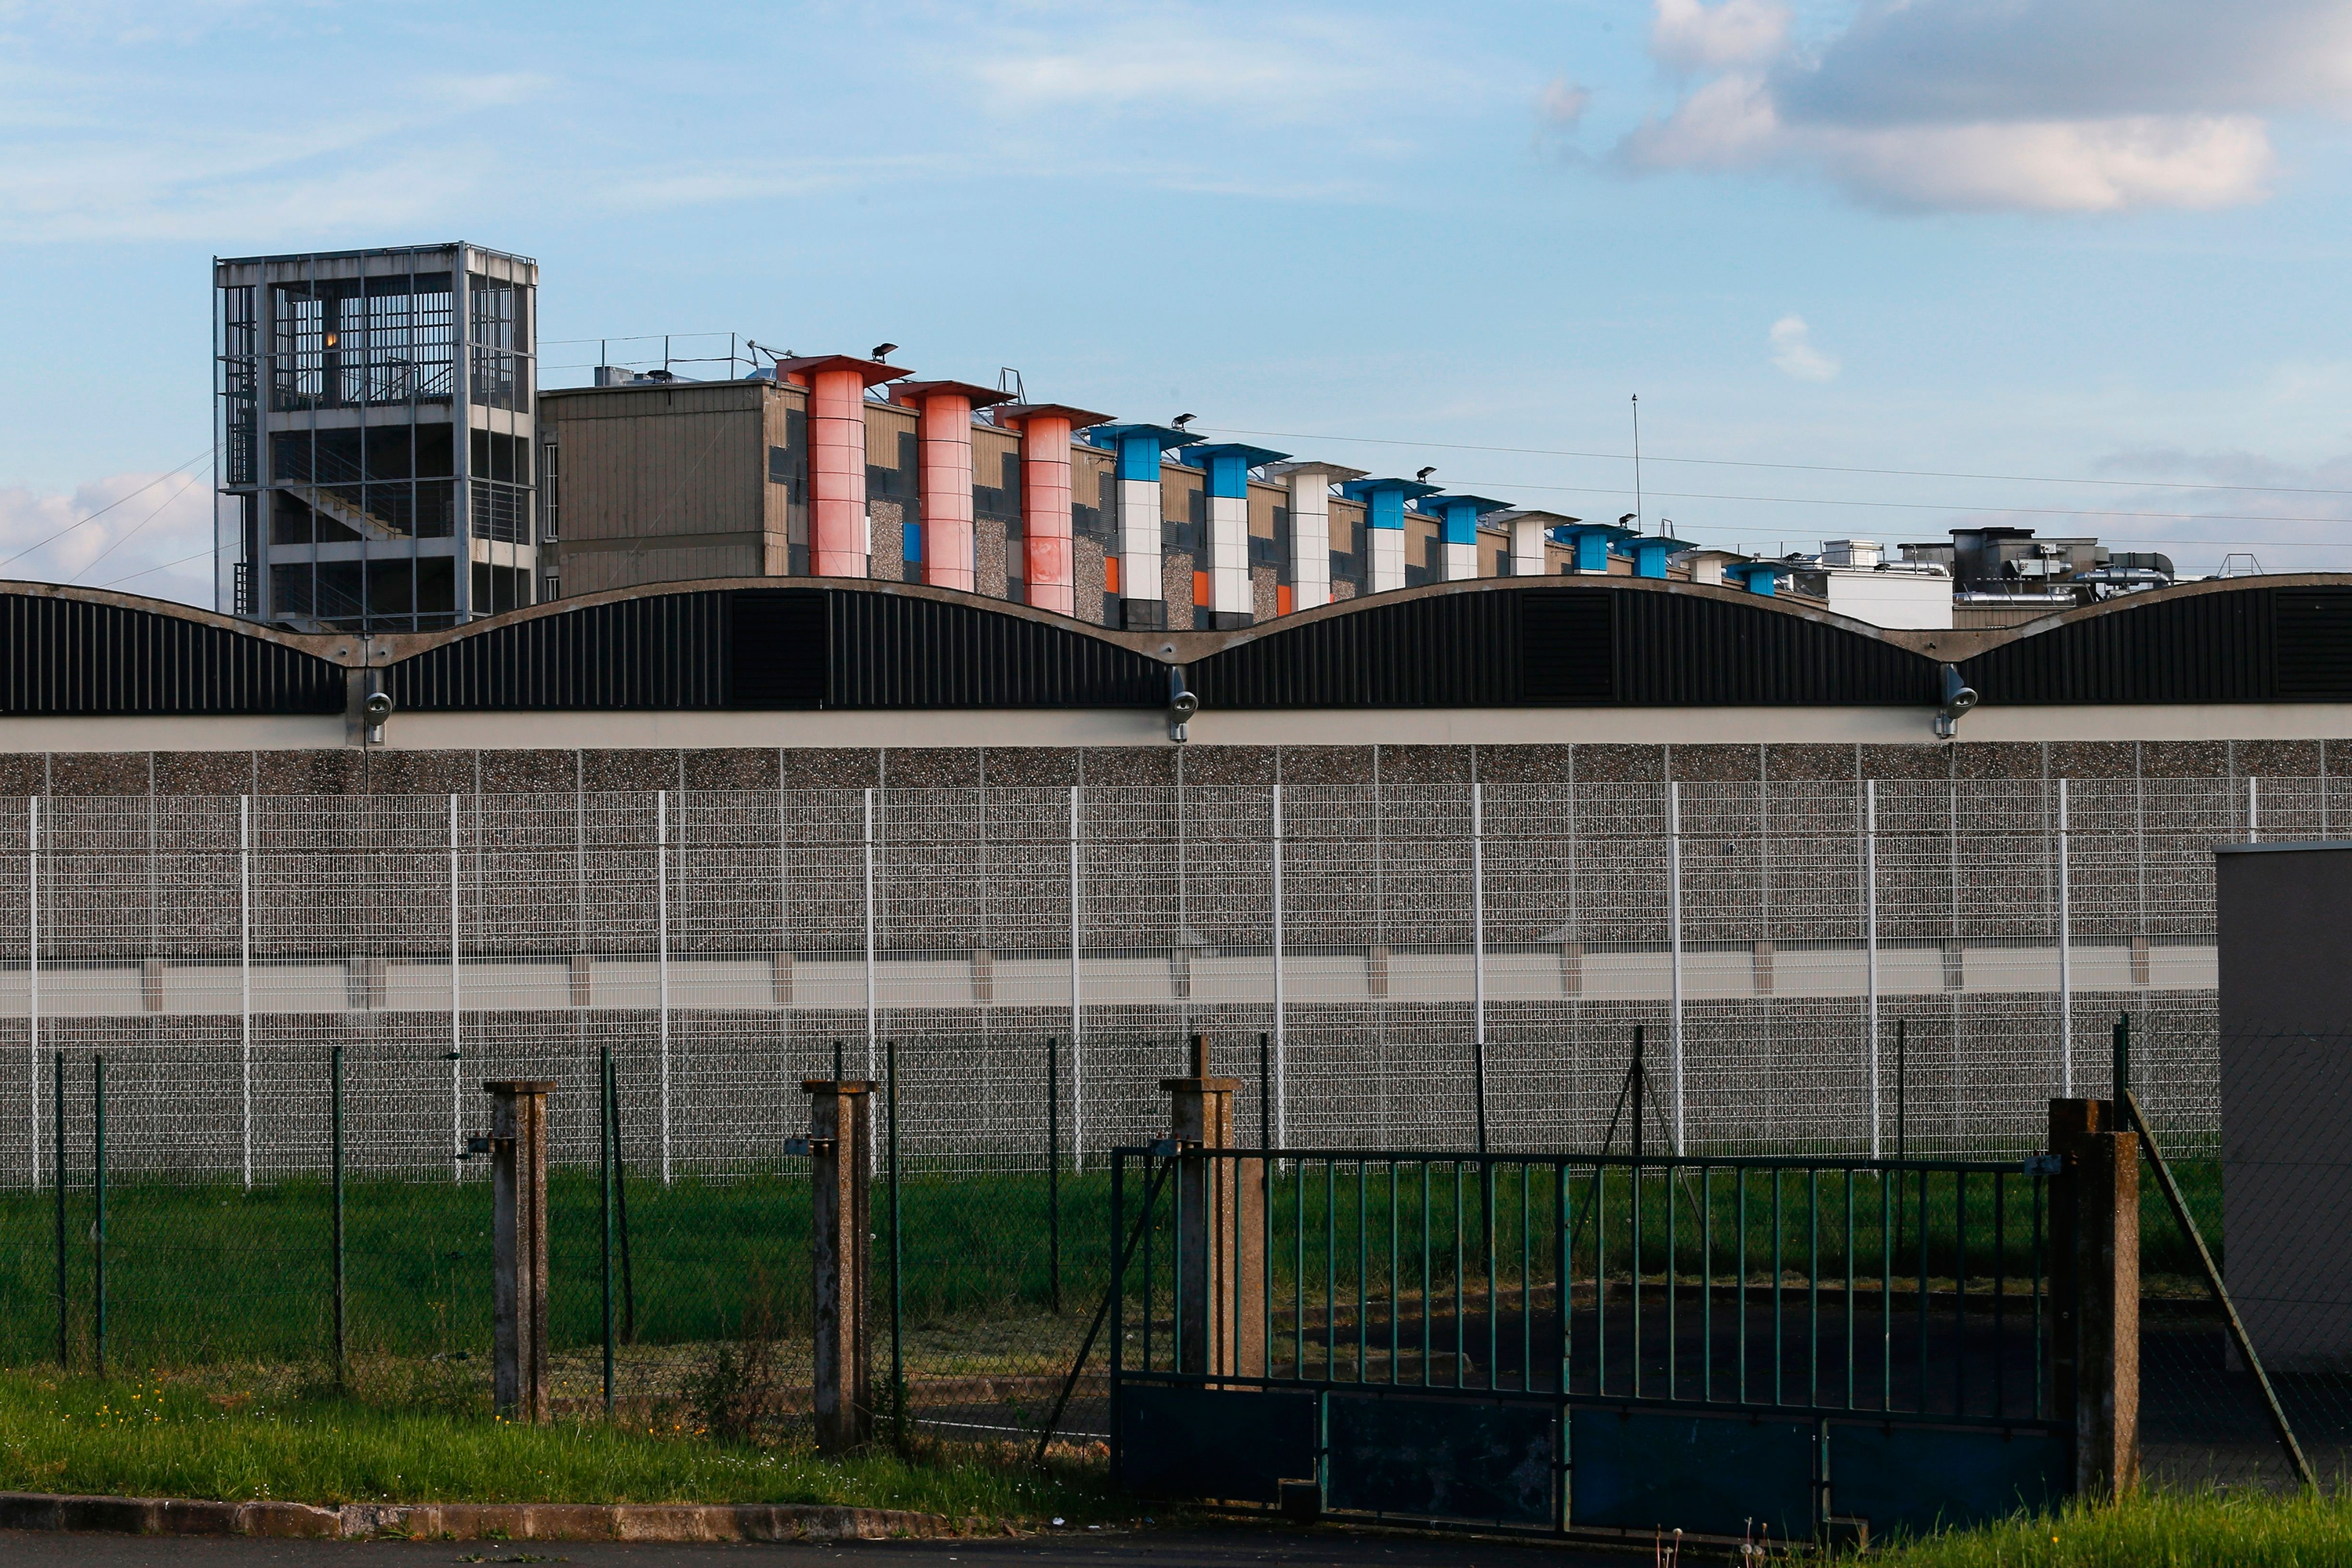 A view of the outside of Fleury-Mérogis prison in the southern suburbs of Paris. (Geoffroy van der Hasselt/AFP/Getty Images)